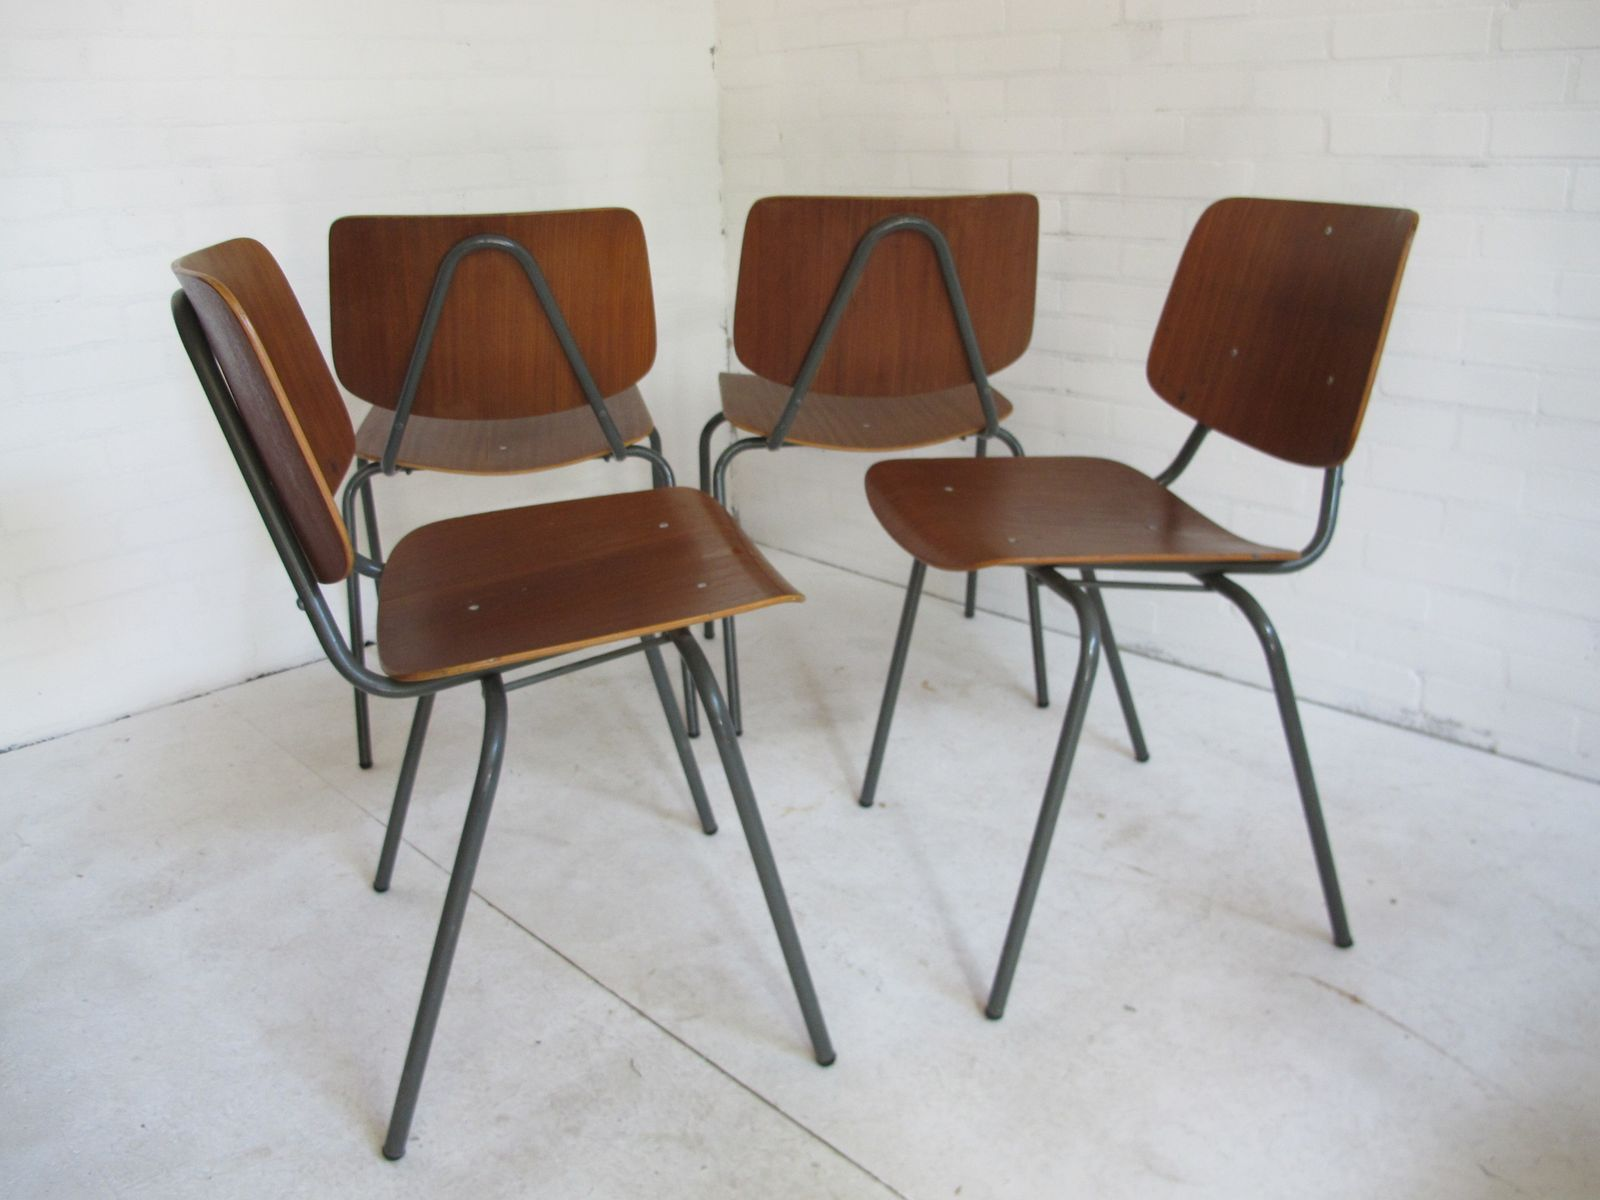 Vintage Teak Industrial Dining Chairs By Kho Liang Ie For